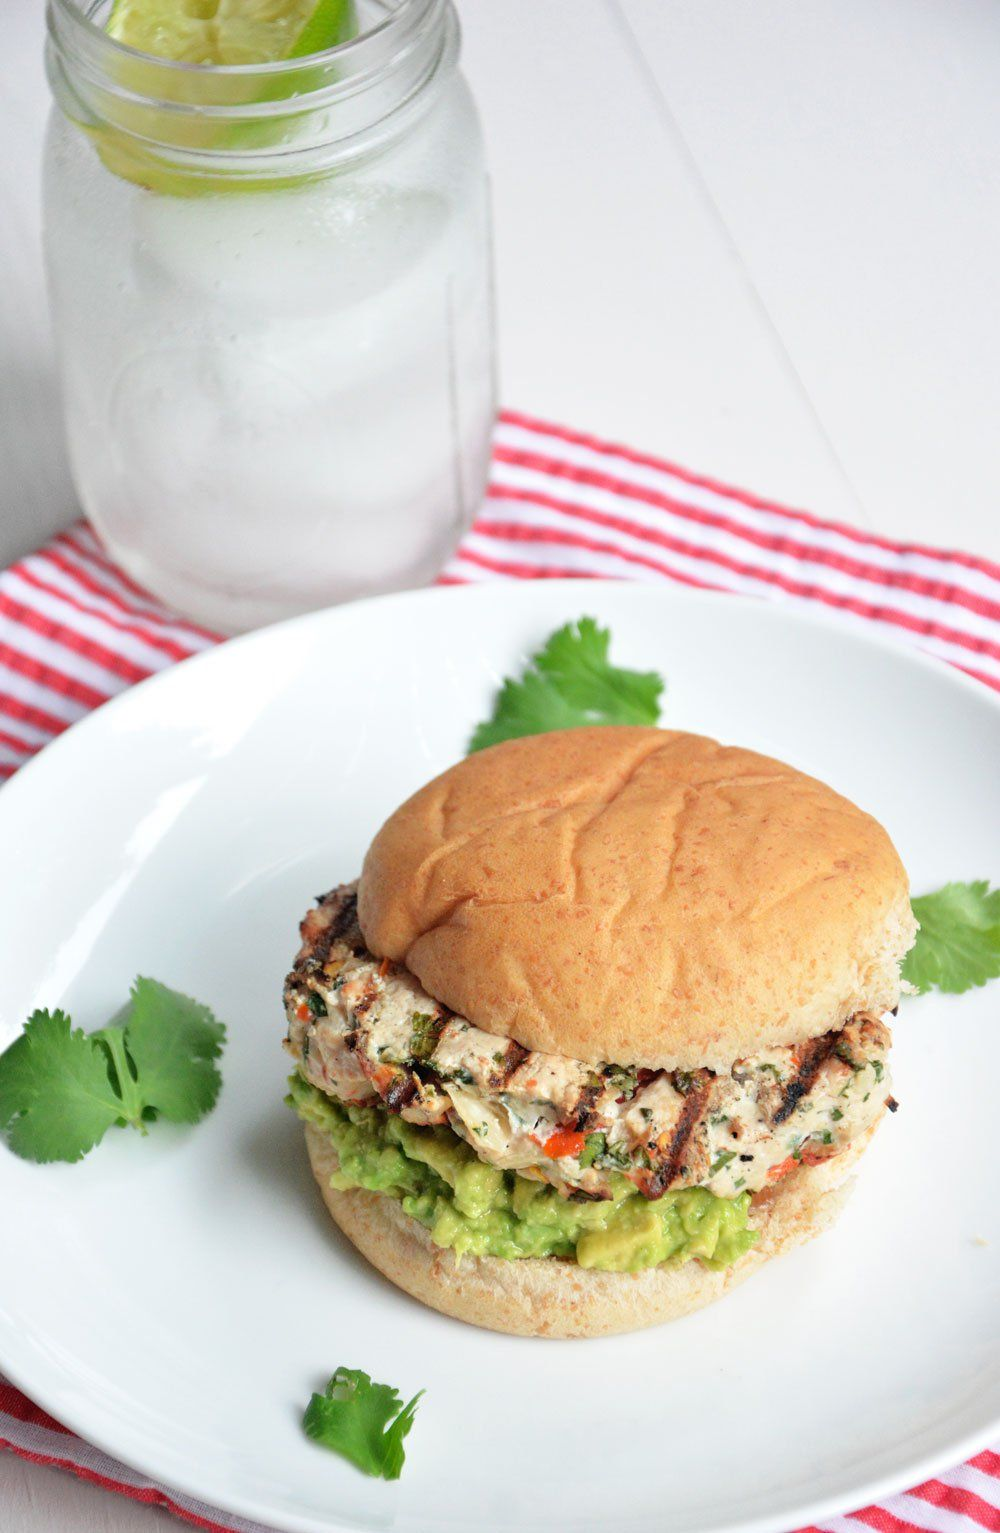 Avocado And Chile Lime Chicken Burgers Recipe Chile Lime